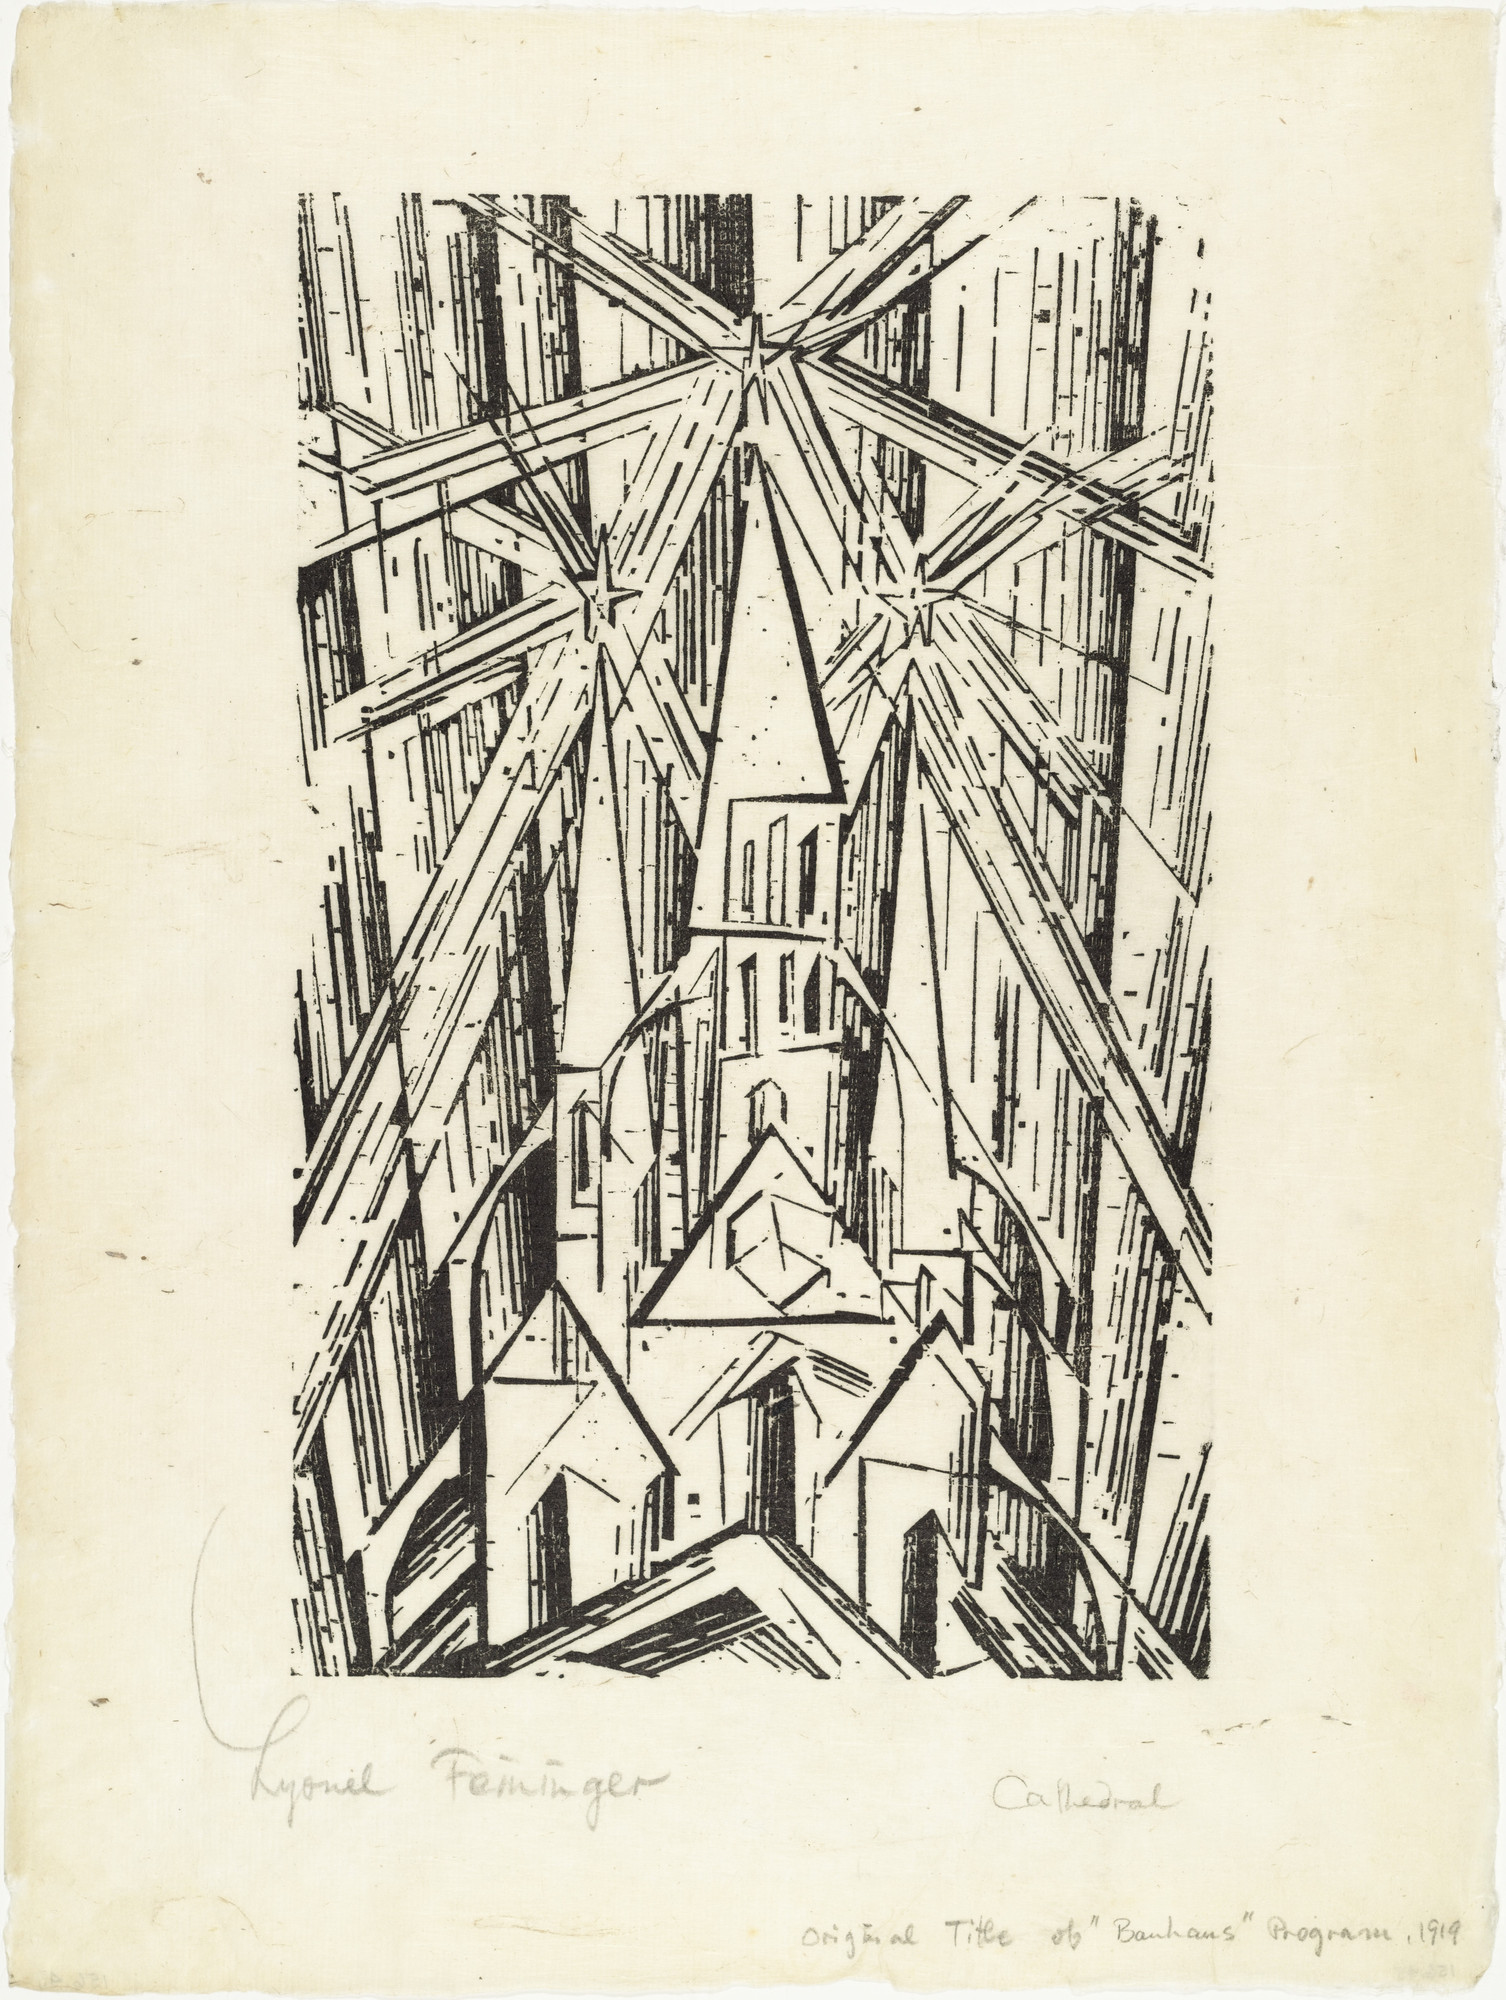 Lyonel Feininger. Cathedral (Kathedrale) for Program of the State Bauhaus in Weimar (Programm des Staatlichen Bauhauses in Weimar). 1919